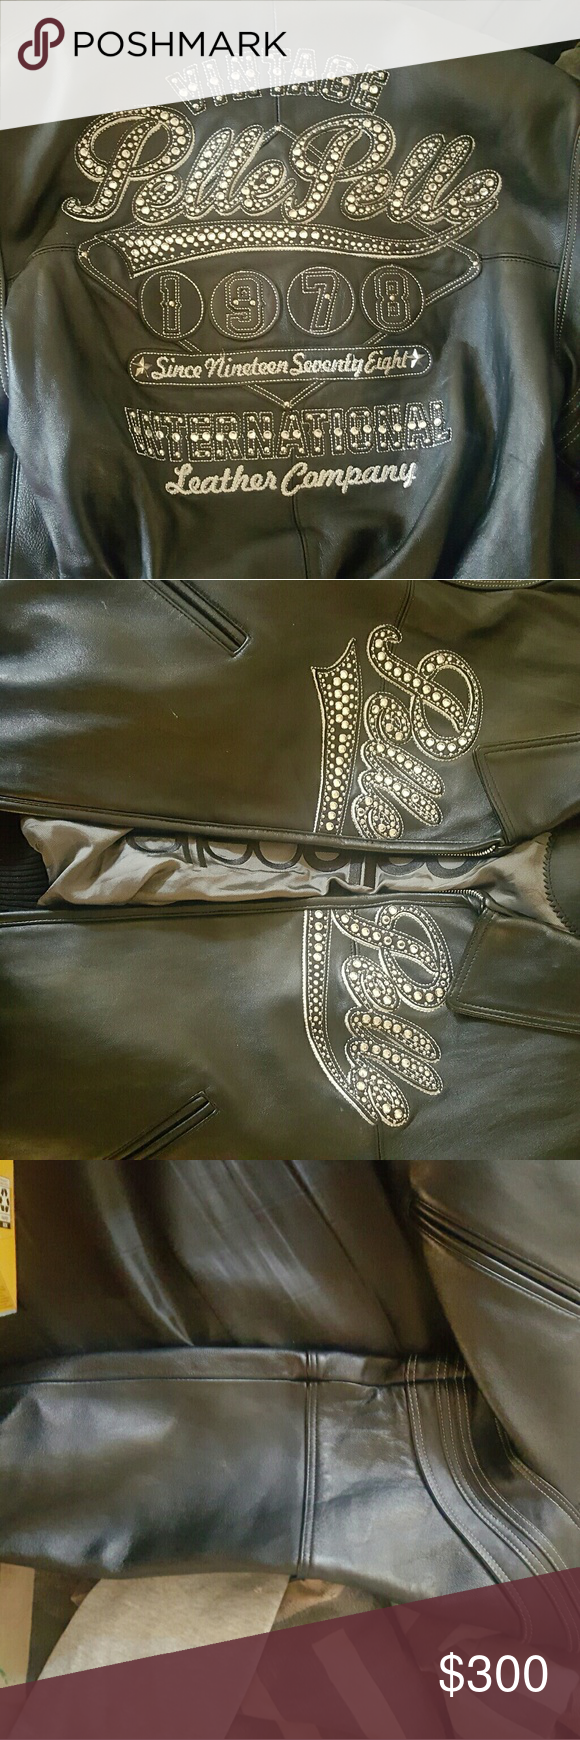 Pelle leather jacket Wore a few time Jackets & Coats